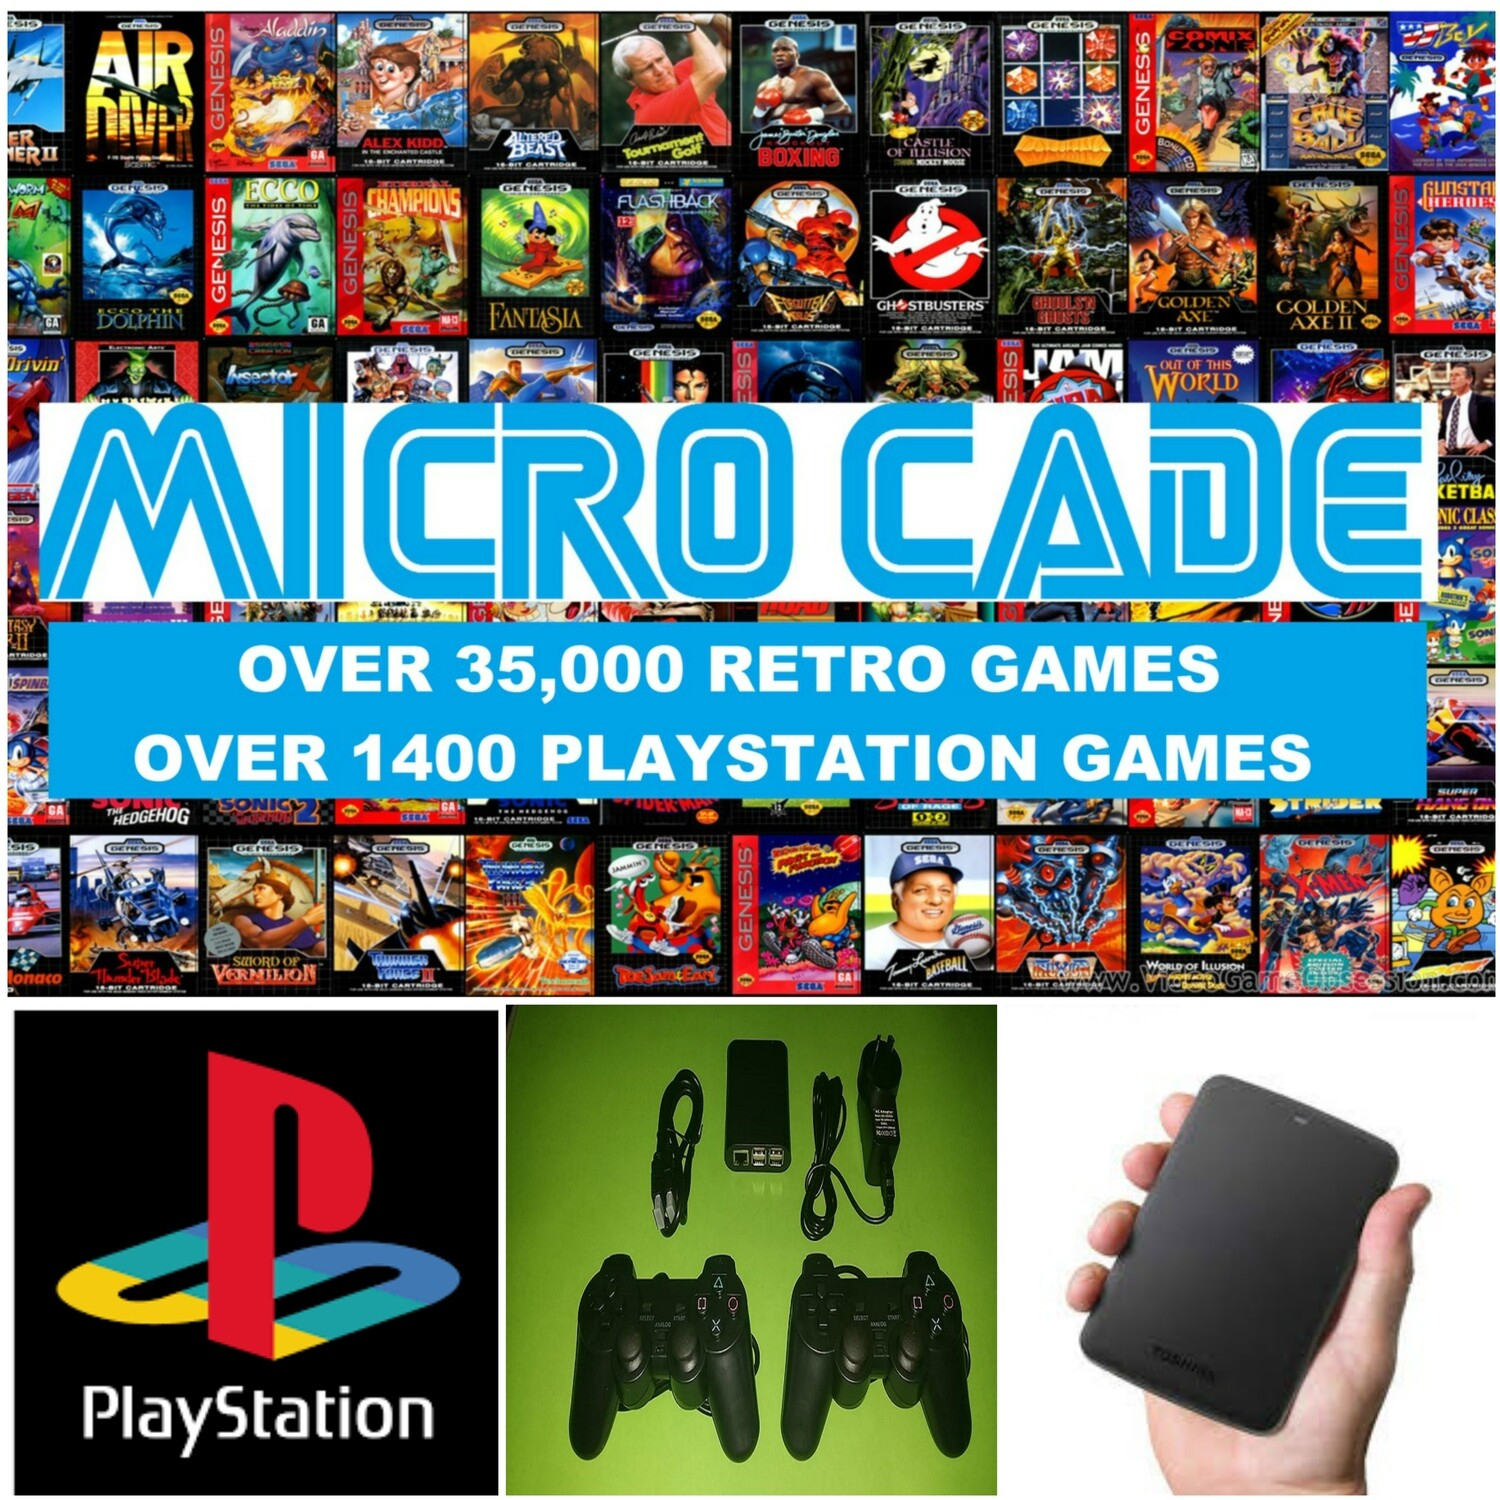 SUPER MEGA BUNDLE OVER 35,000 RETRO GAMES AND 1400 PLAYSTATION GAMES  2 X  PS CONTROLLERS WITH 1TB USB DRIVE